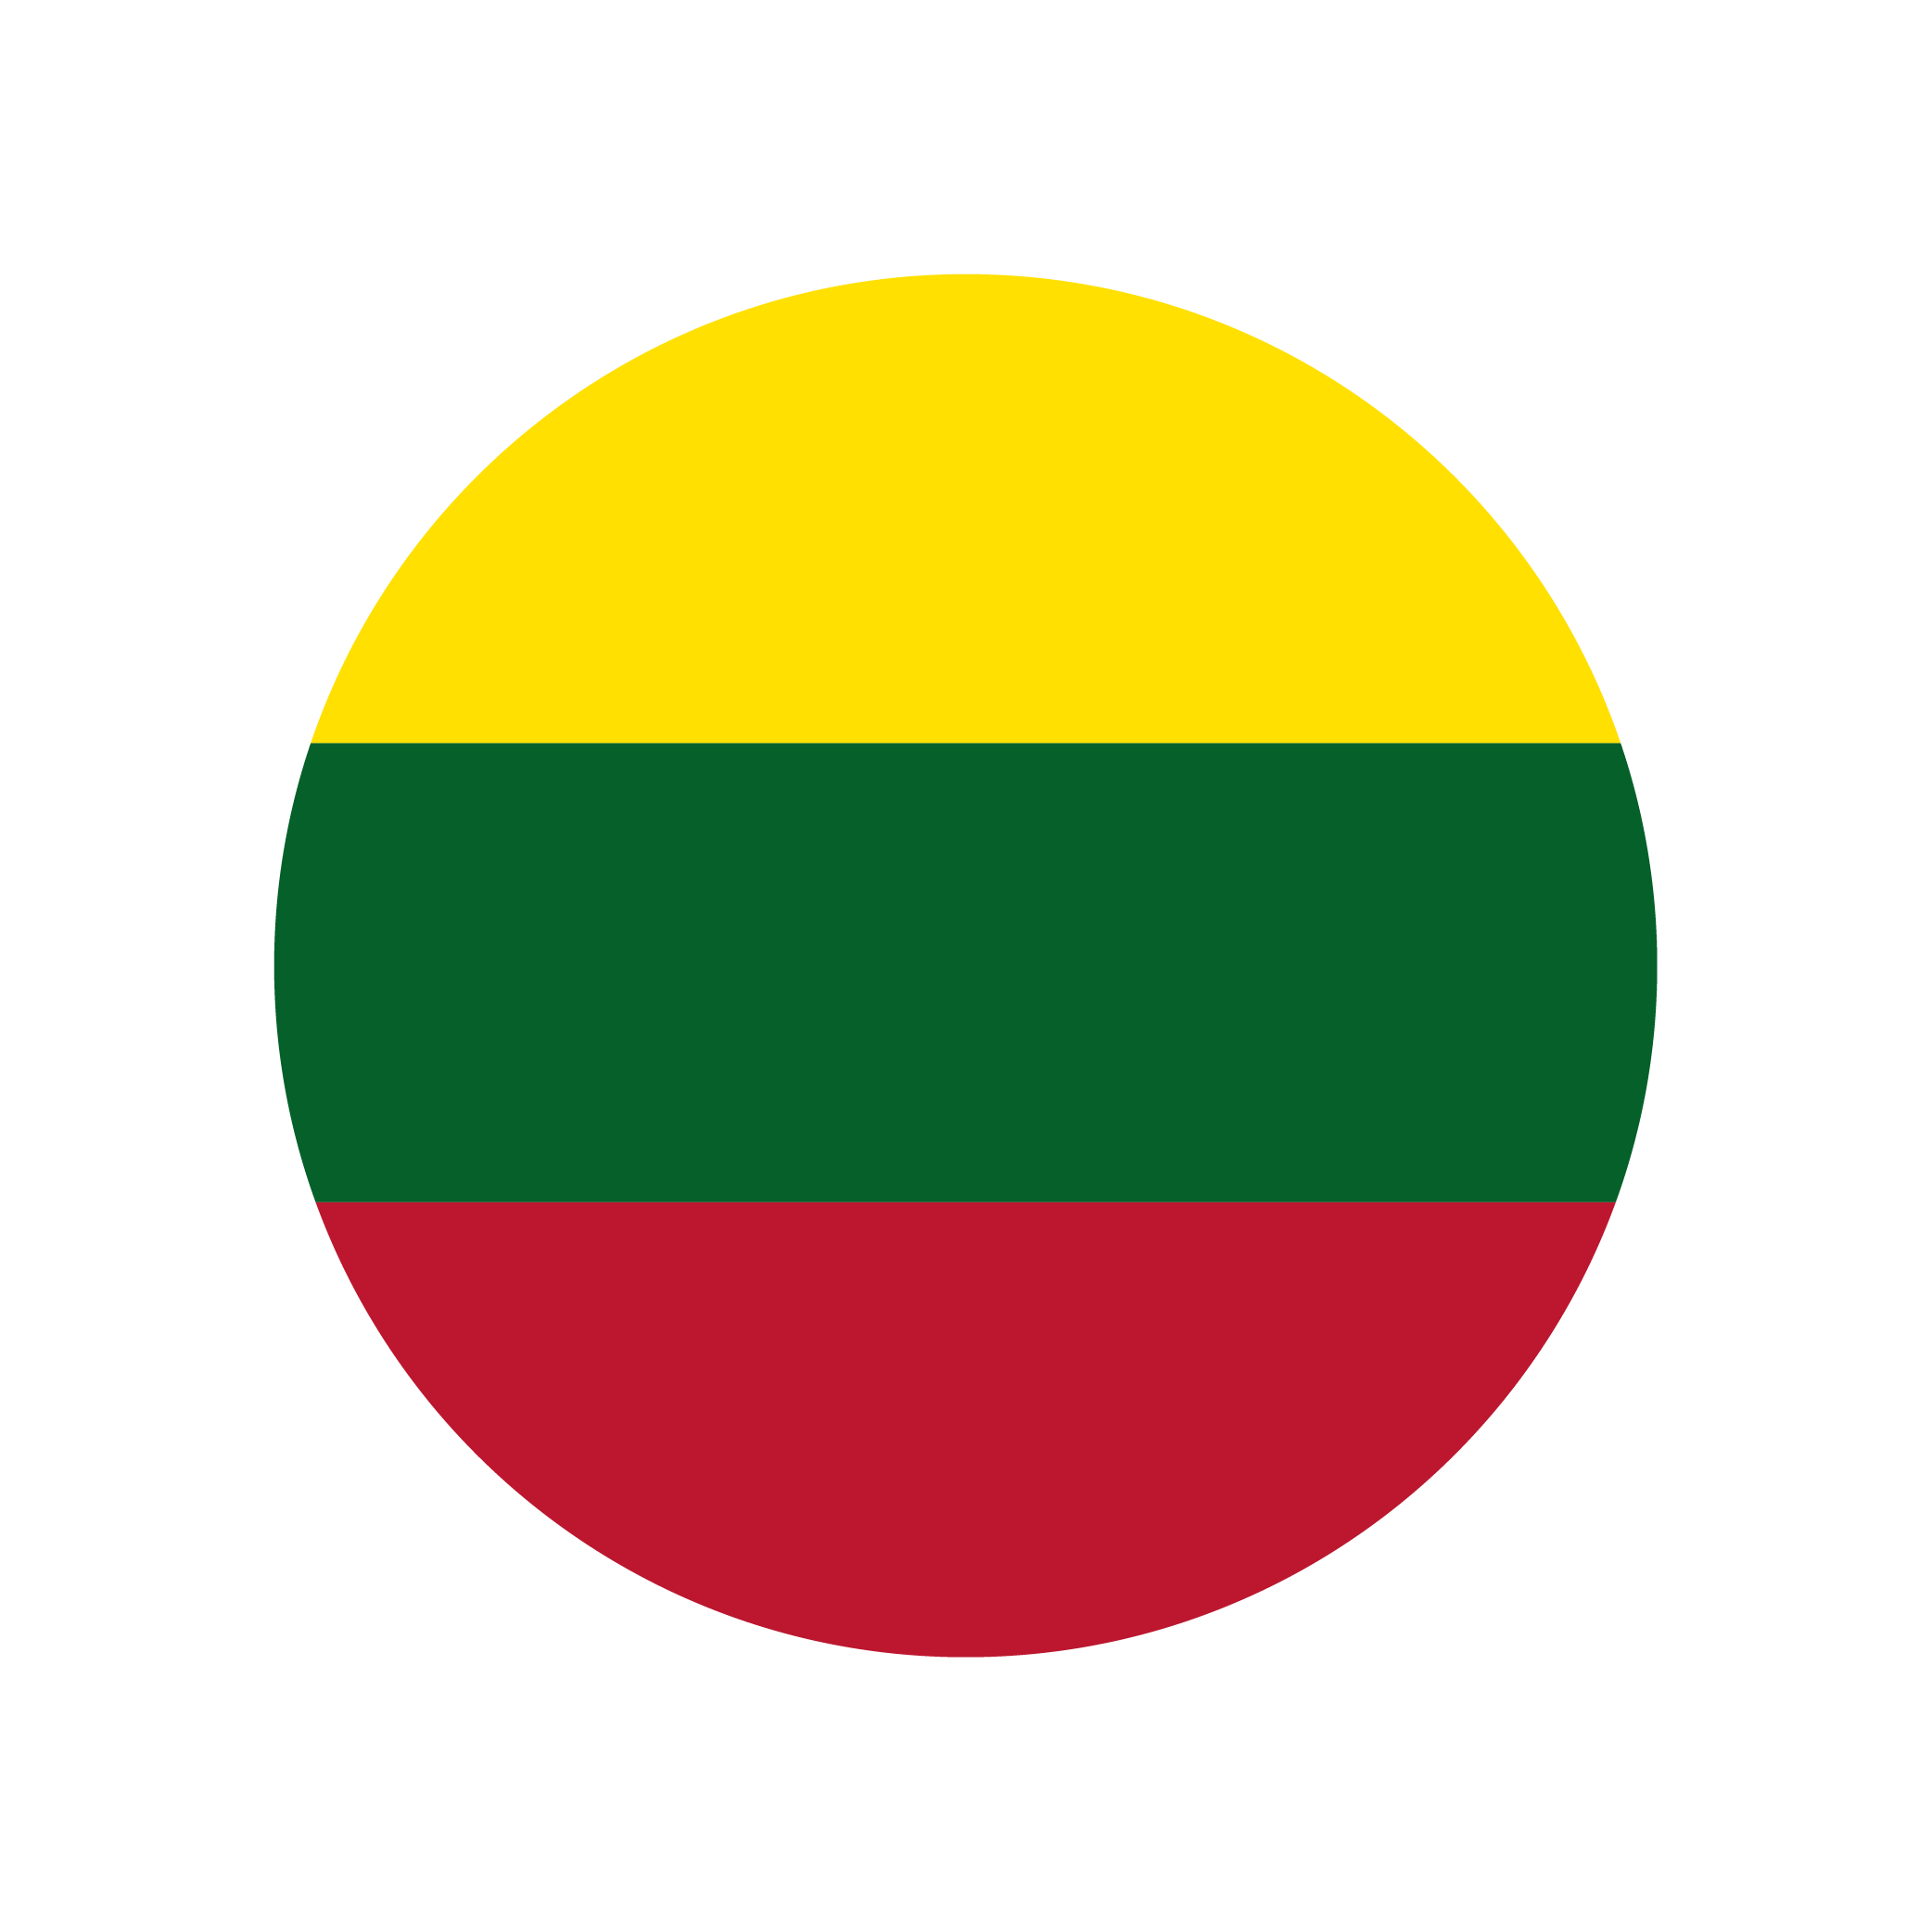 Flag-Country_Lithuania.png